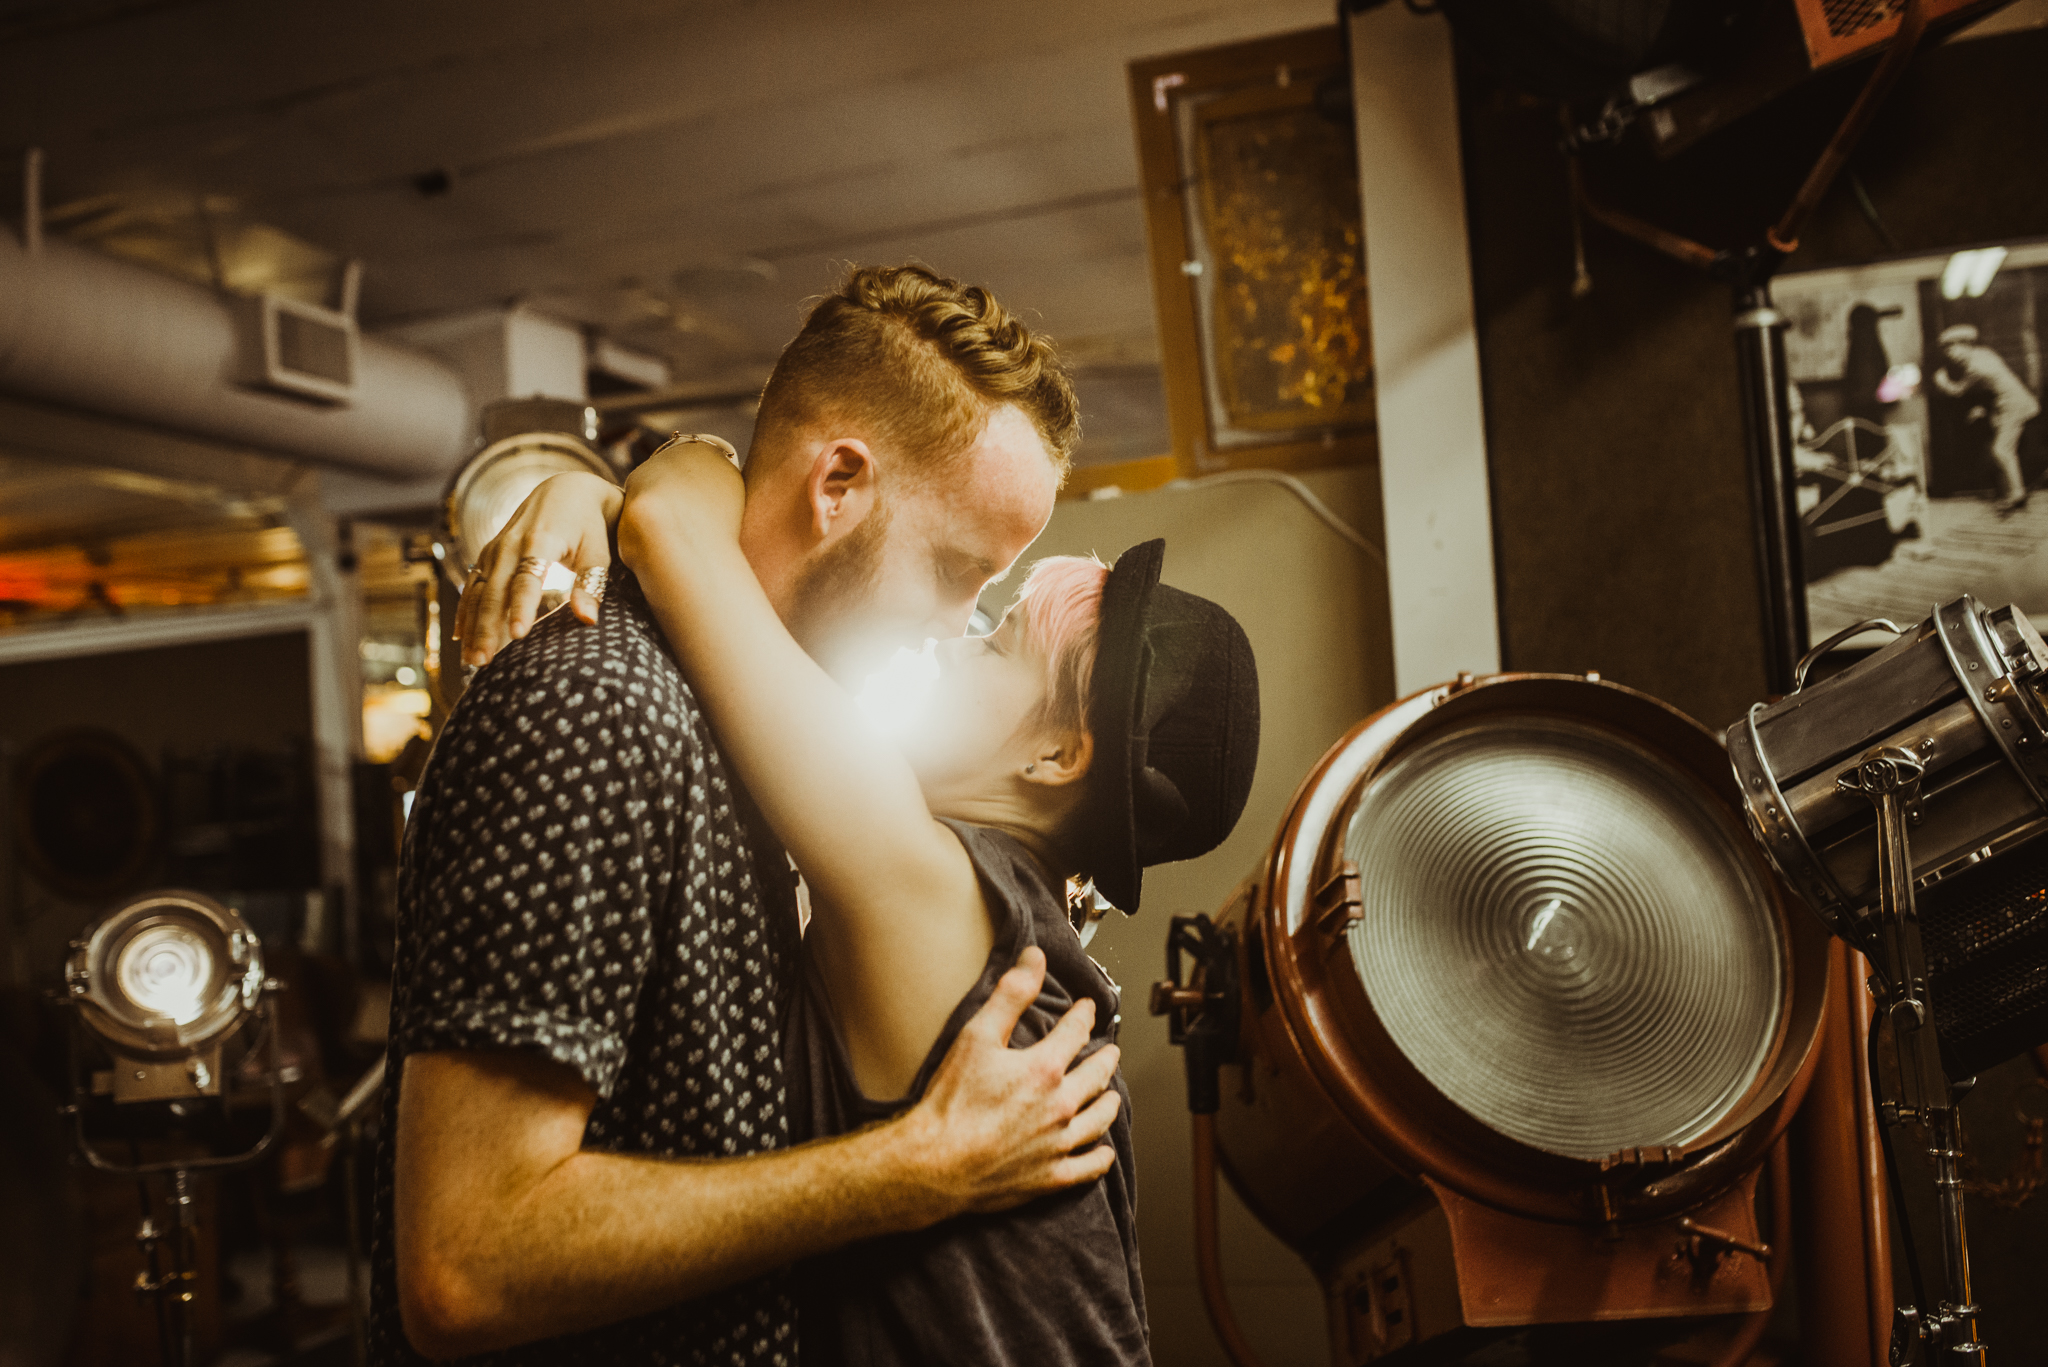 ©Isaiah-&-Taylor-Photography---Nate-+-Drea-Engagement-Proposal,-Antique-Shop,-Pasadena-017.jpg